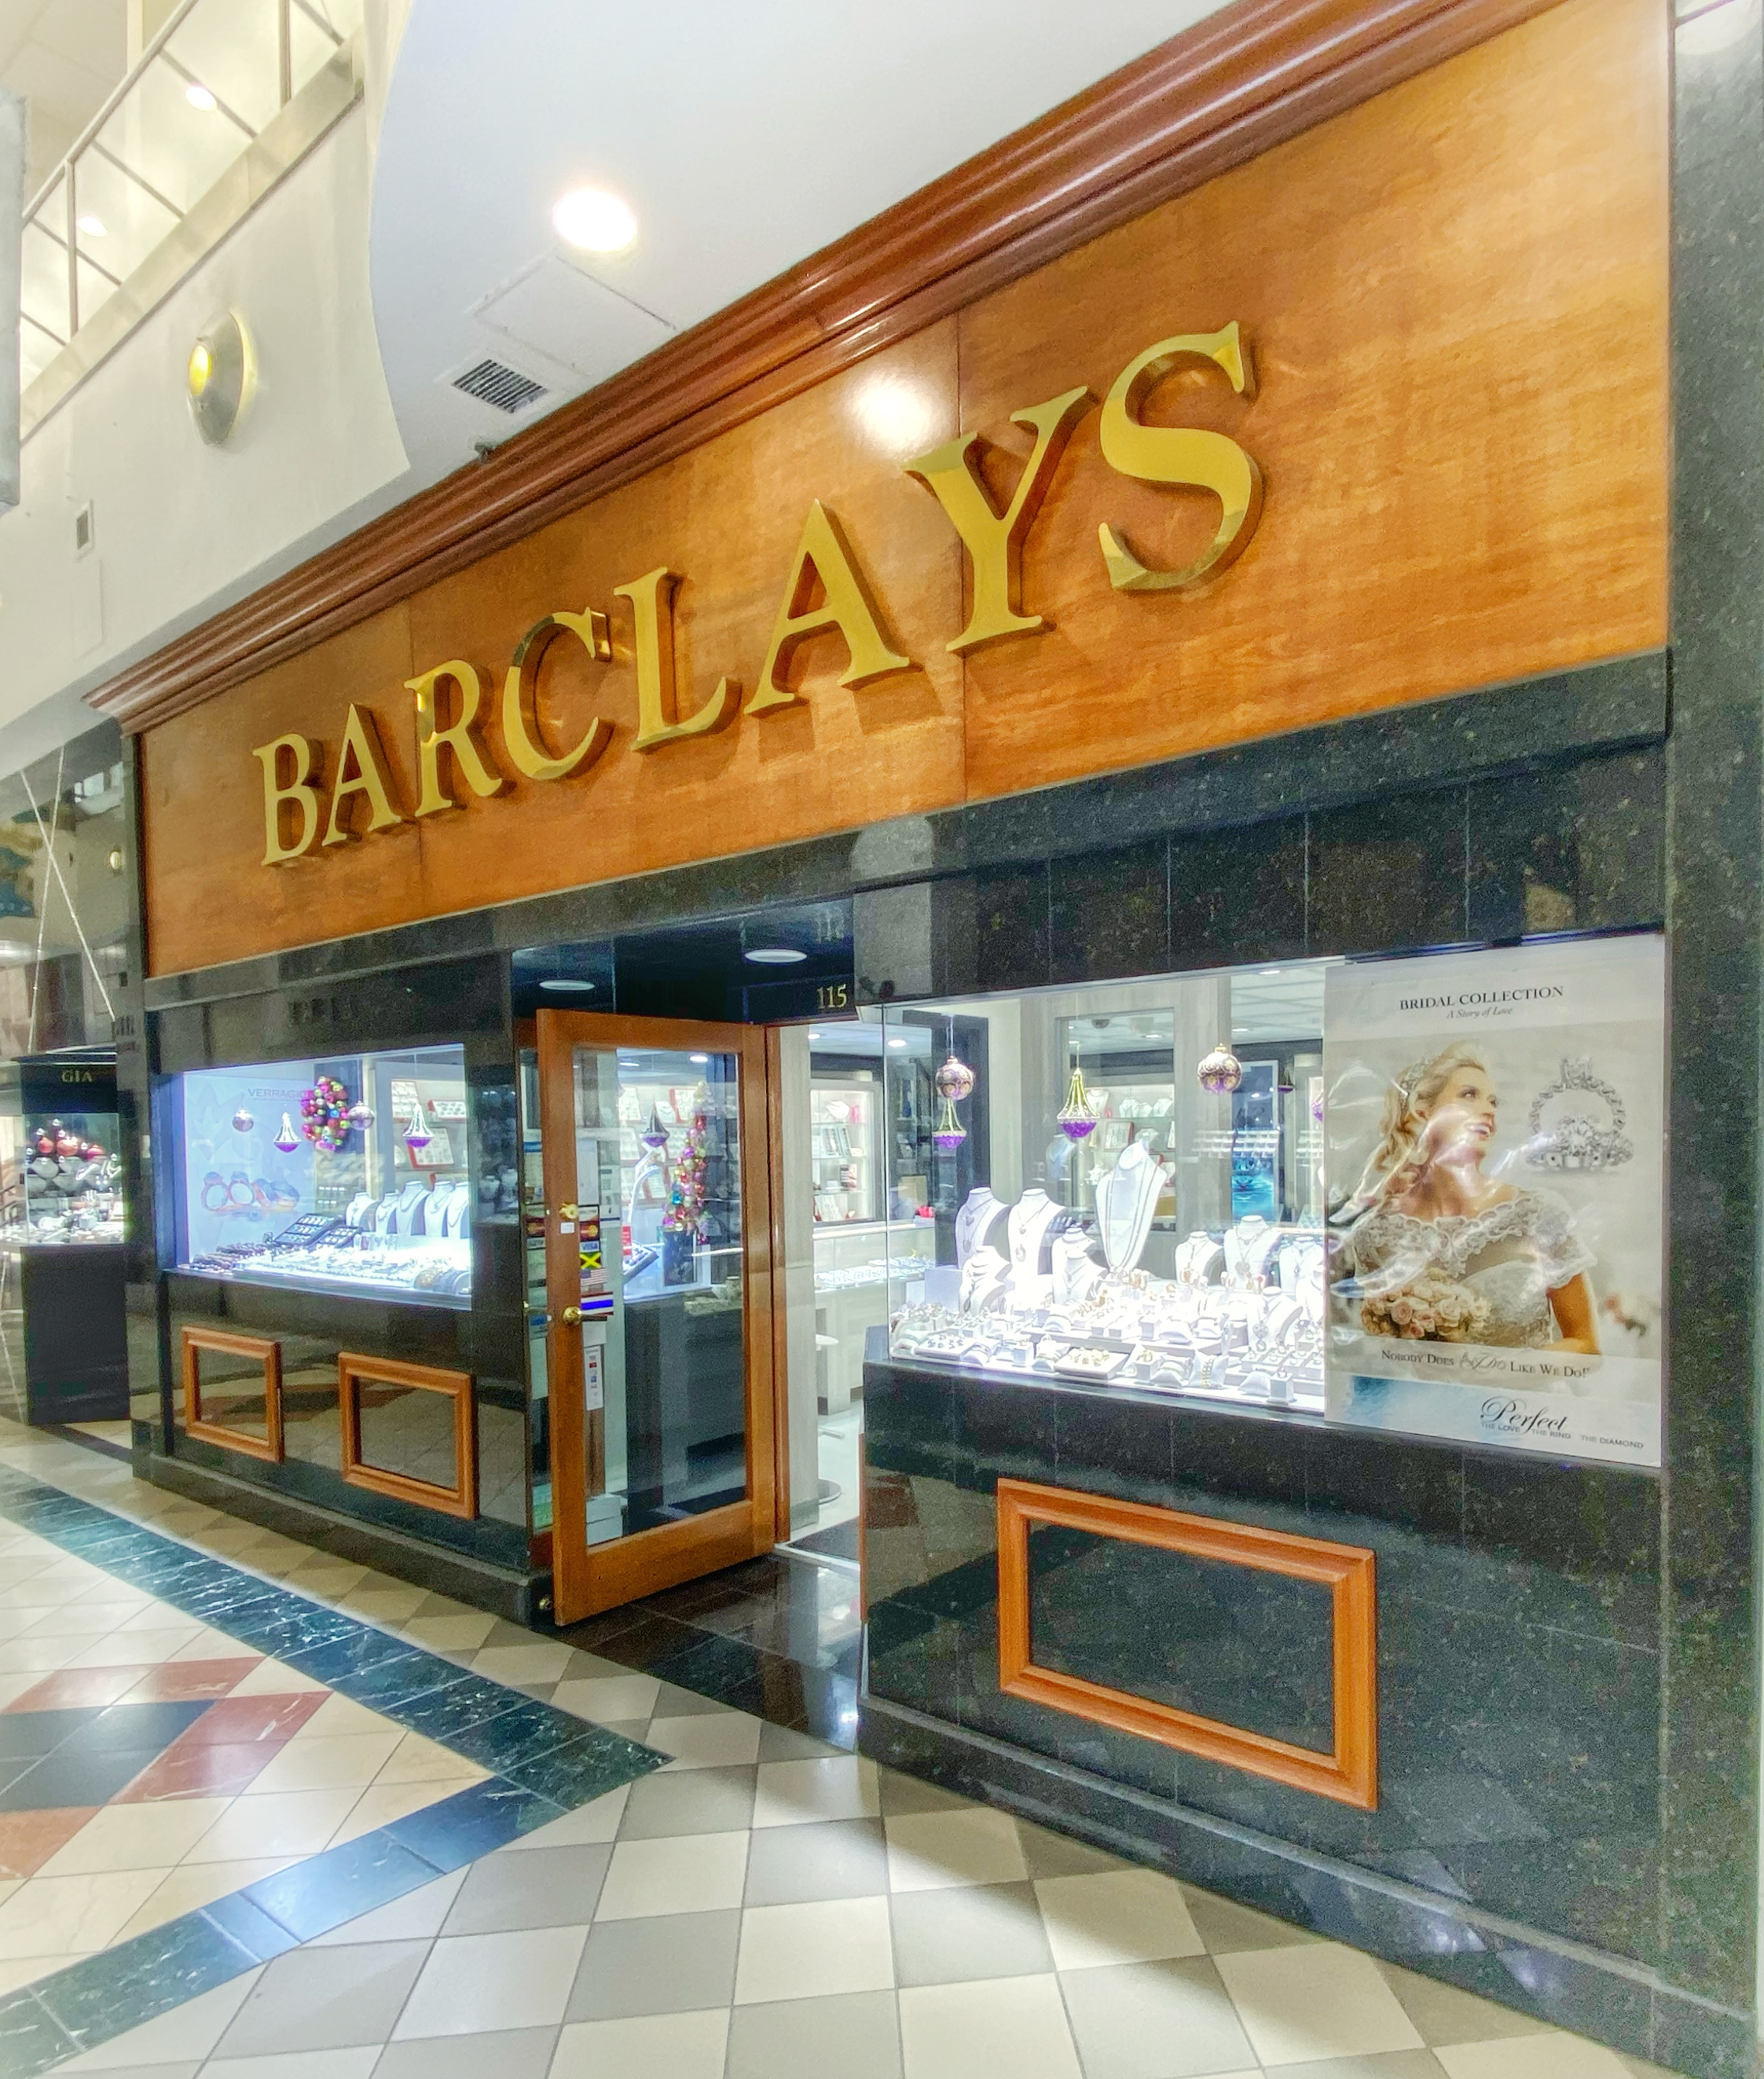 Barclay's Jewelers in Miami, FL